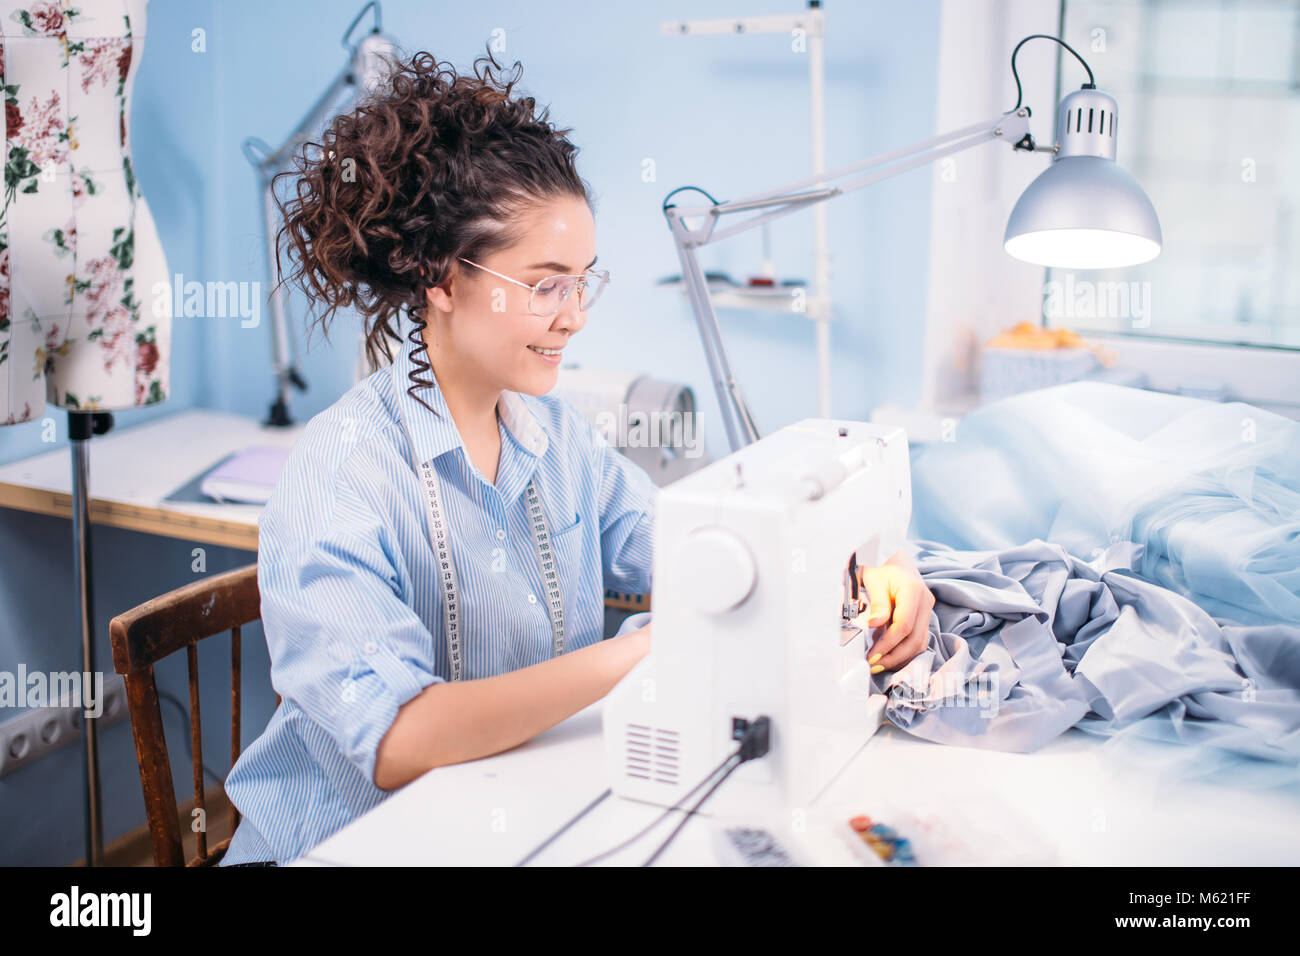 tailor wearing blue blouse and having flexible ruler on her shoulders - Stock Image